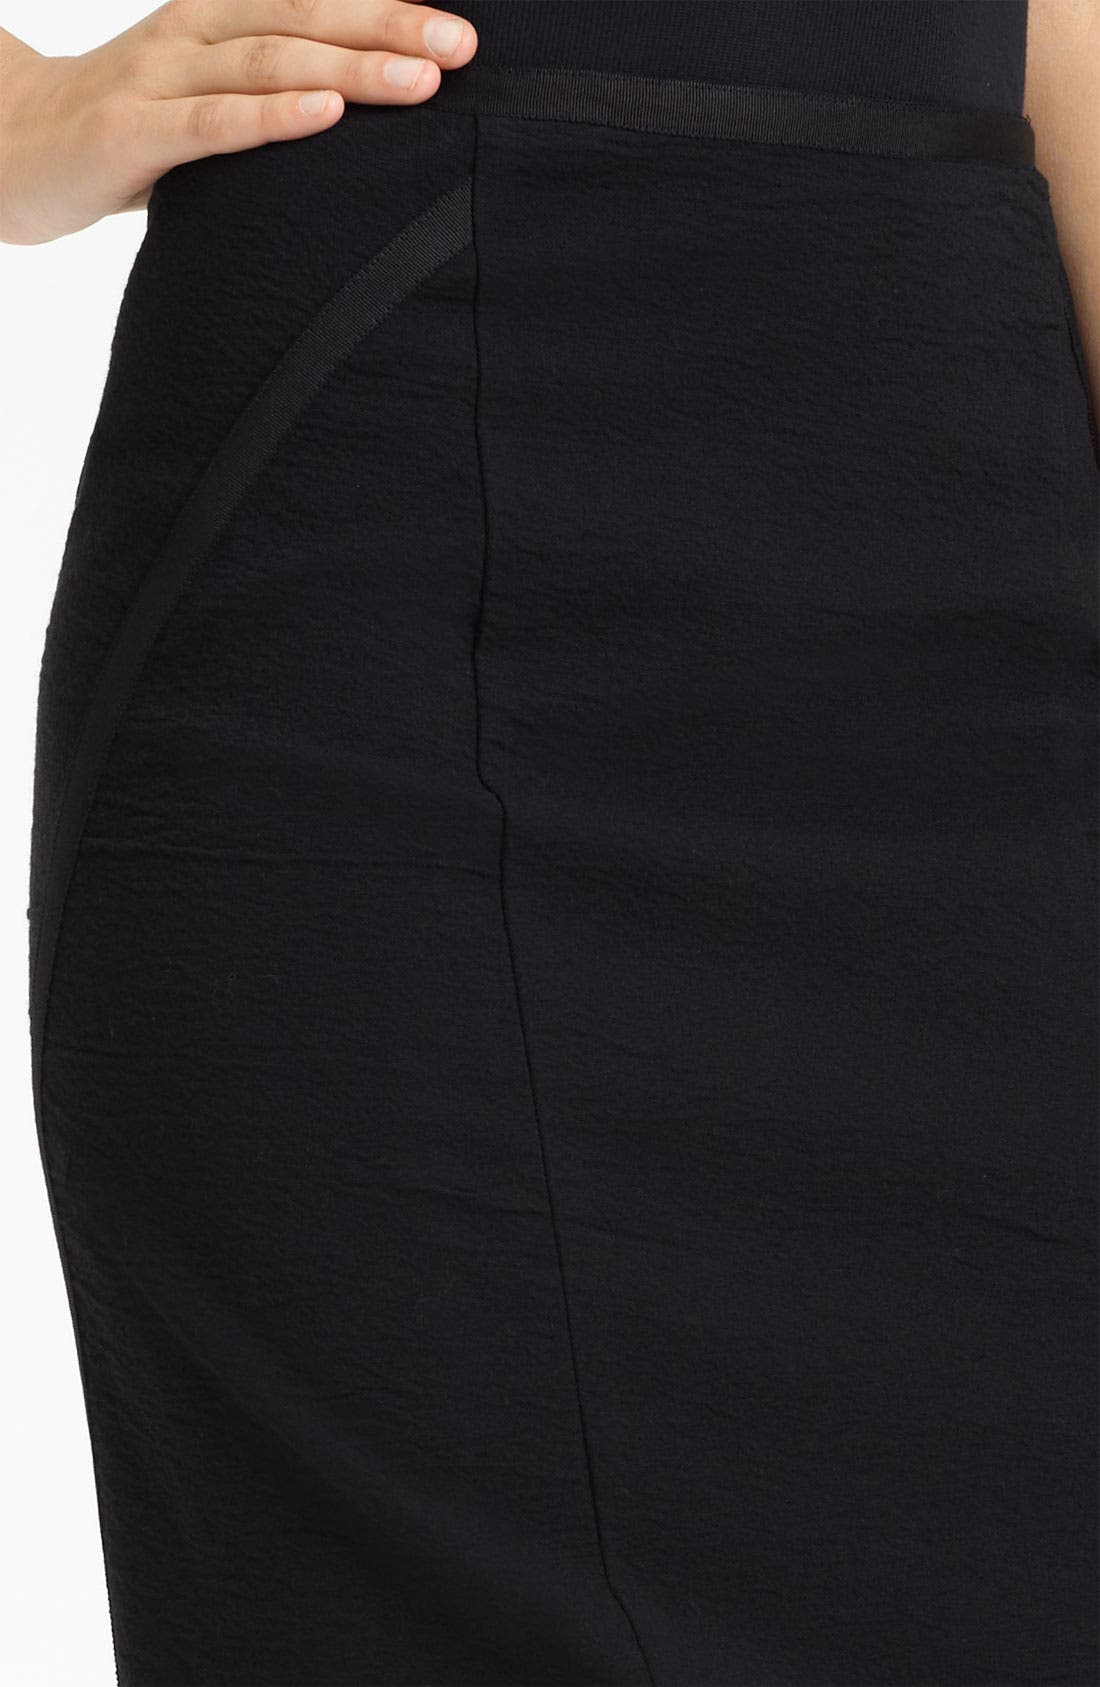 Alternate Image 2  - Donna Karan Collection Crepe Canvas Pencil Skirt